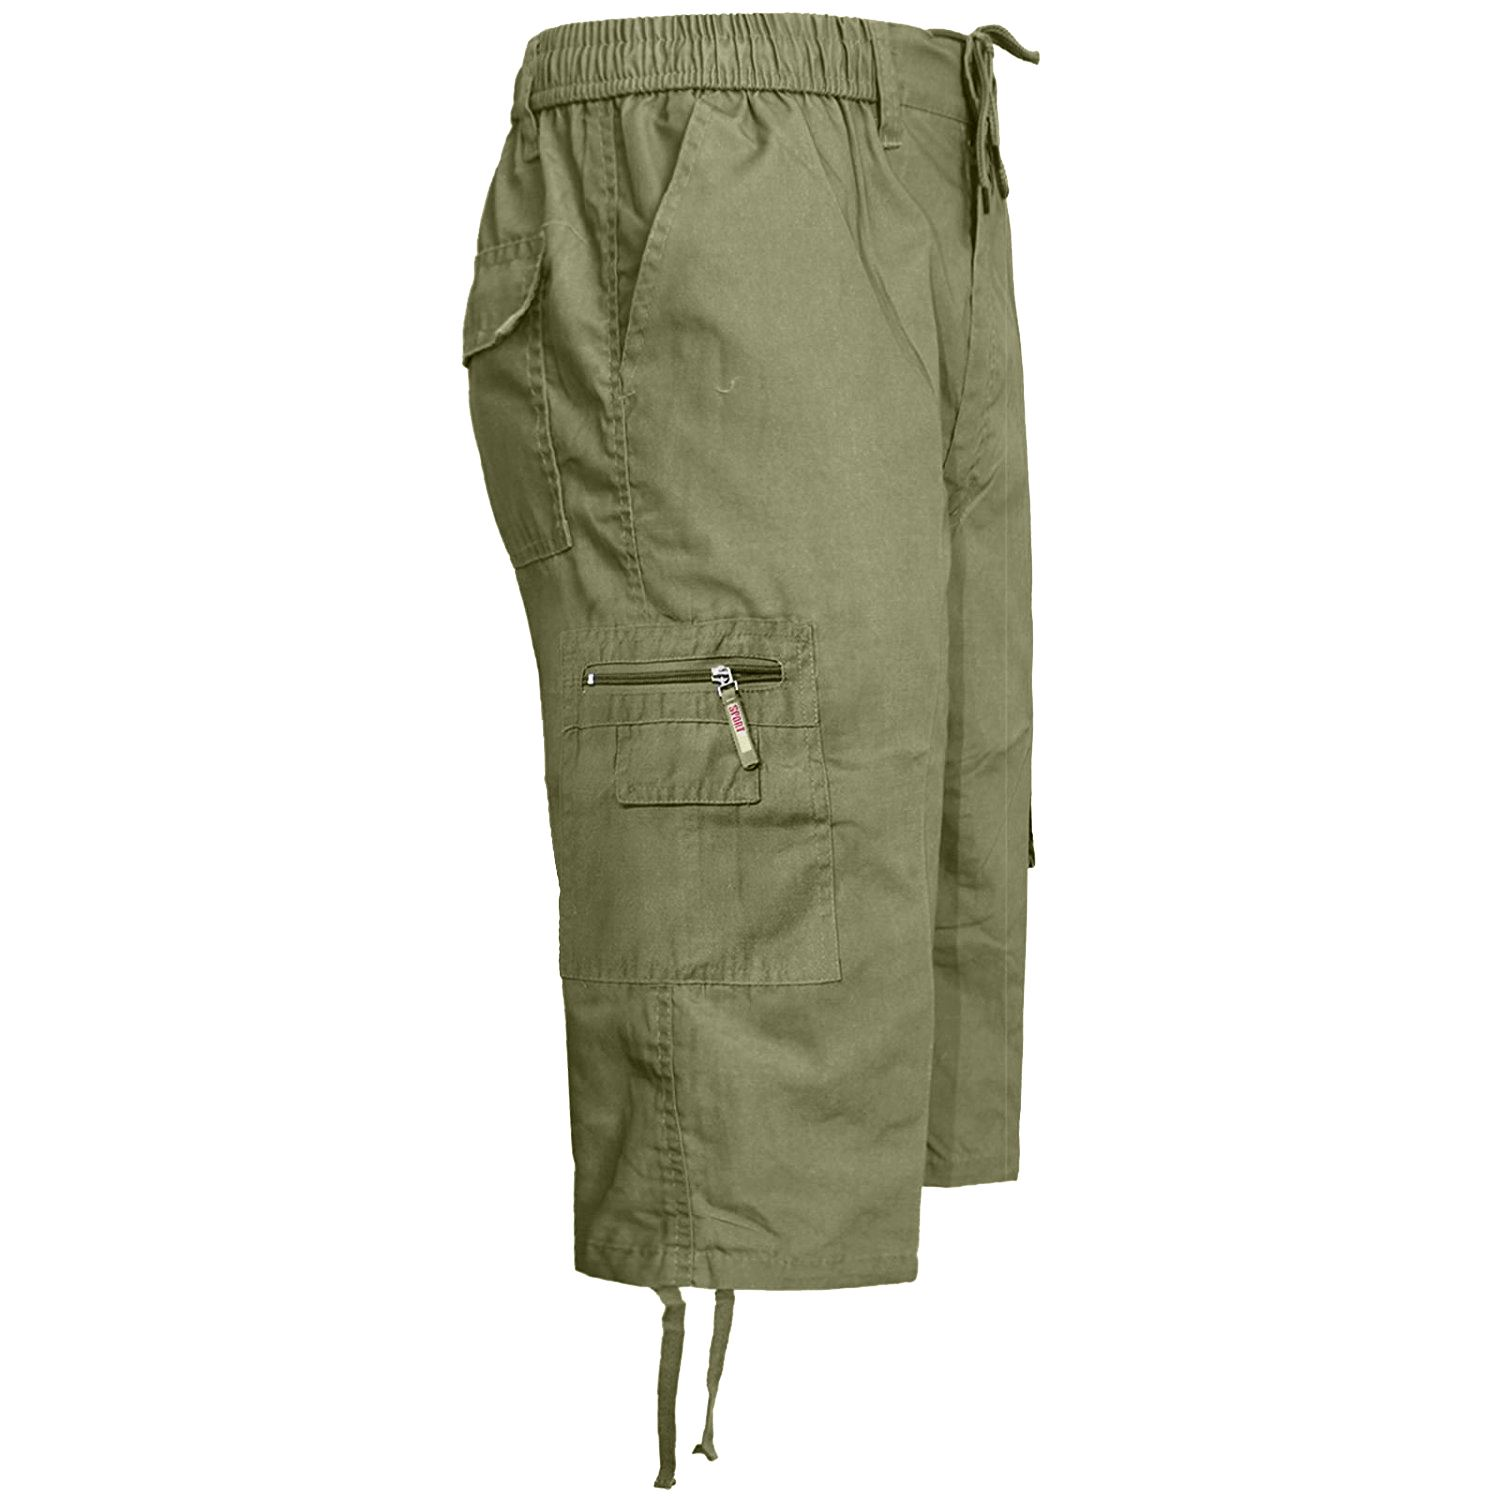 MENS-ELASTICATED-KNEE-LENGTH-OR-3-4-SHORTS-CARGO-COMBAT-MULTI-POCKET-SUMMER-PANT thumbnail 35